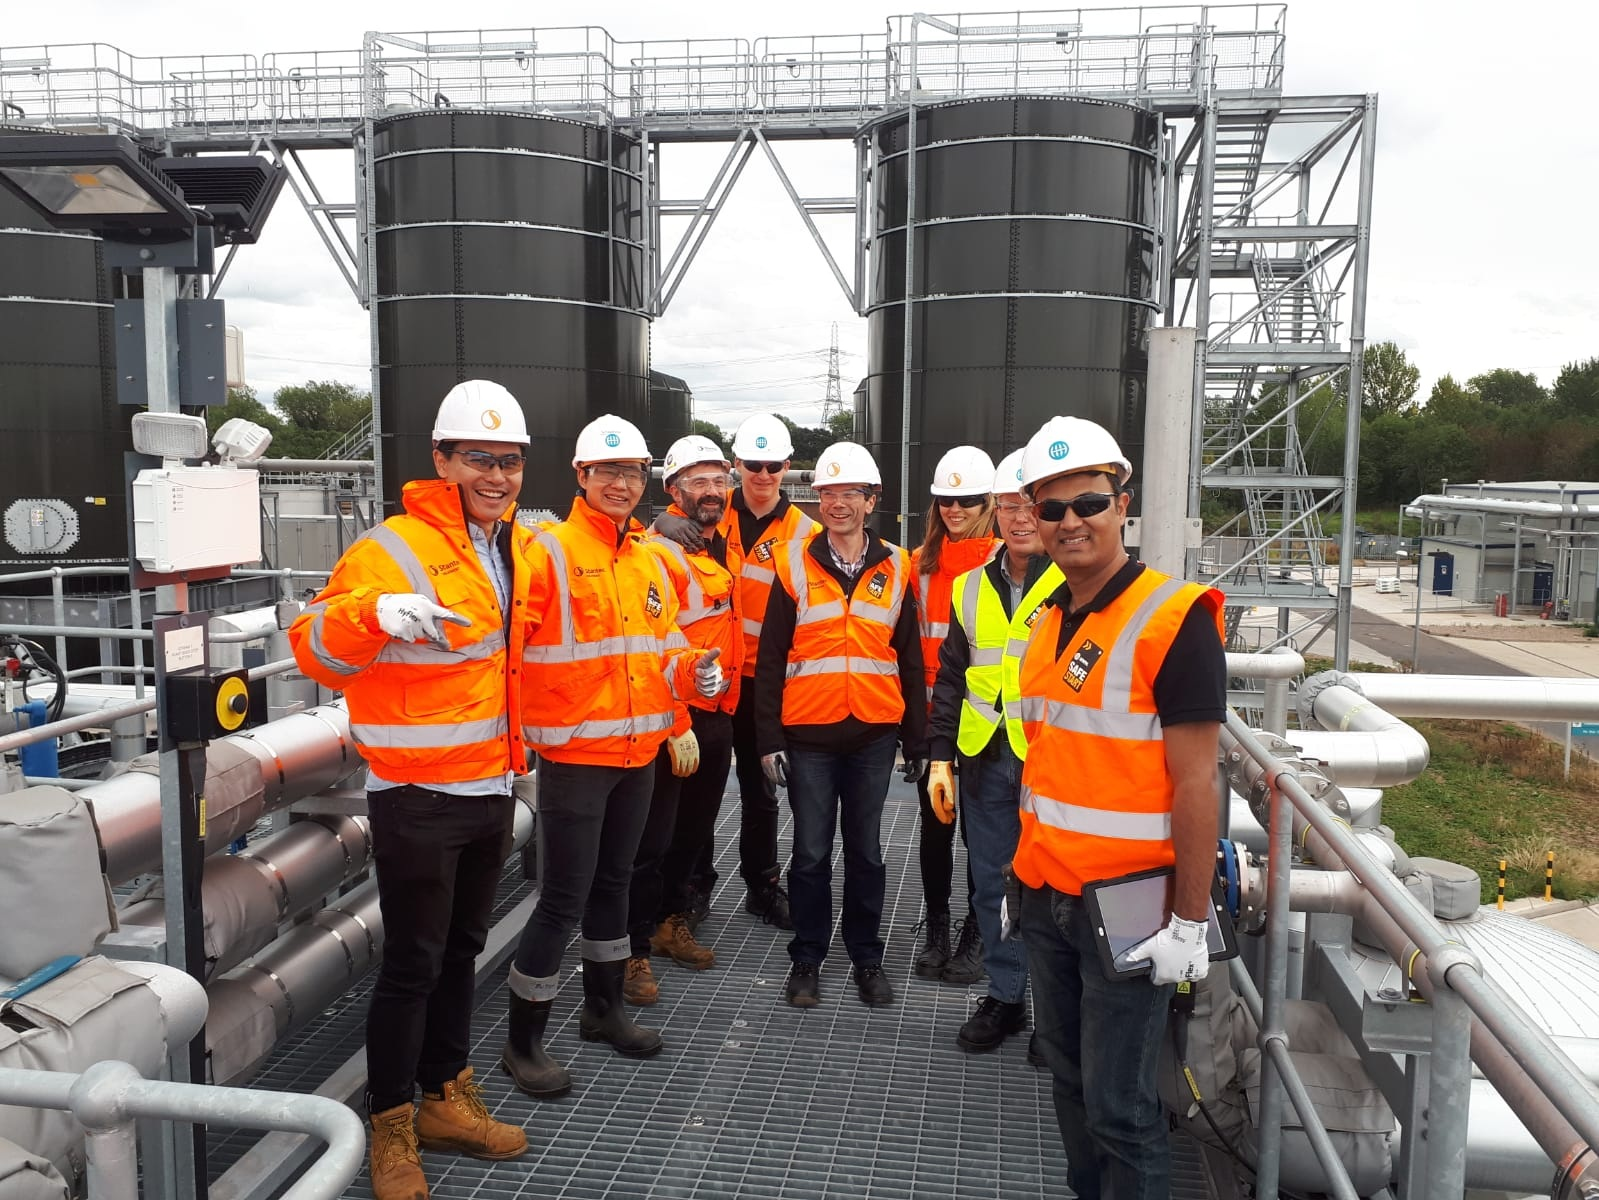 Airsquire and MWH Treatment at water treatment plant